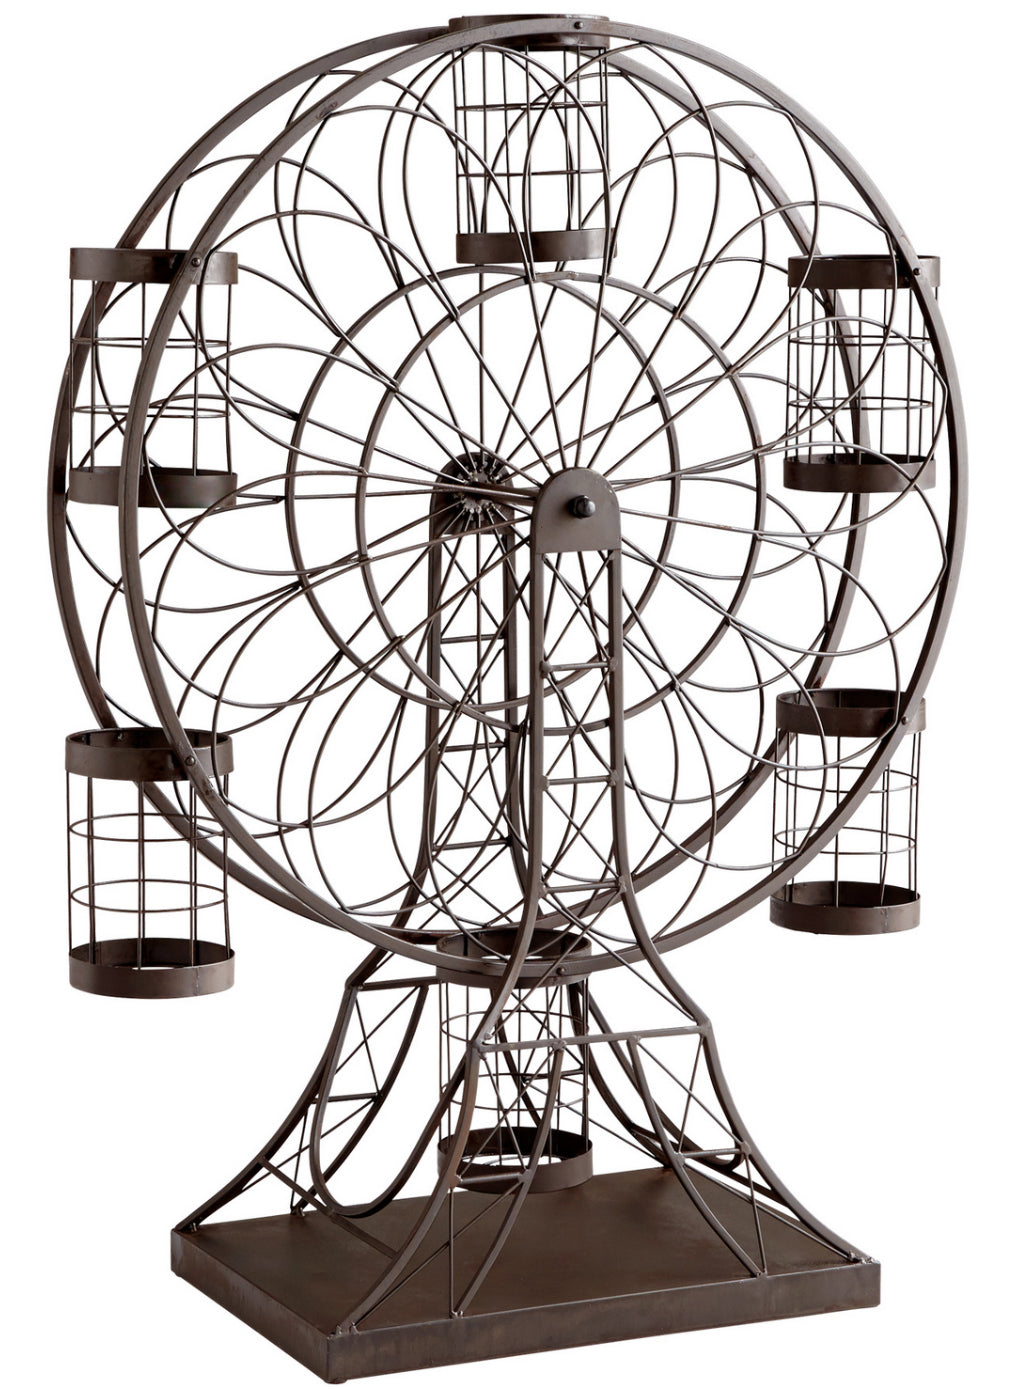 L01675 - Ferris Wheel Wine Holder